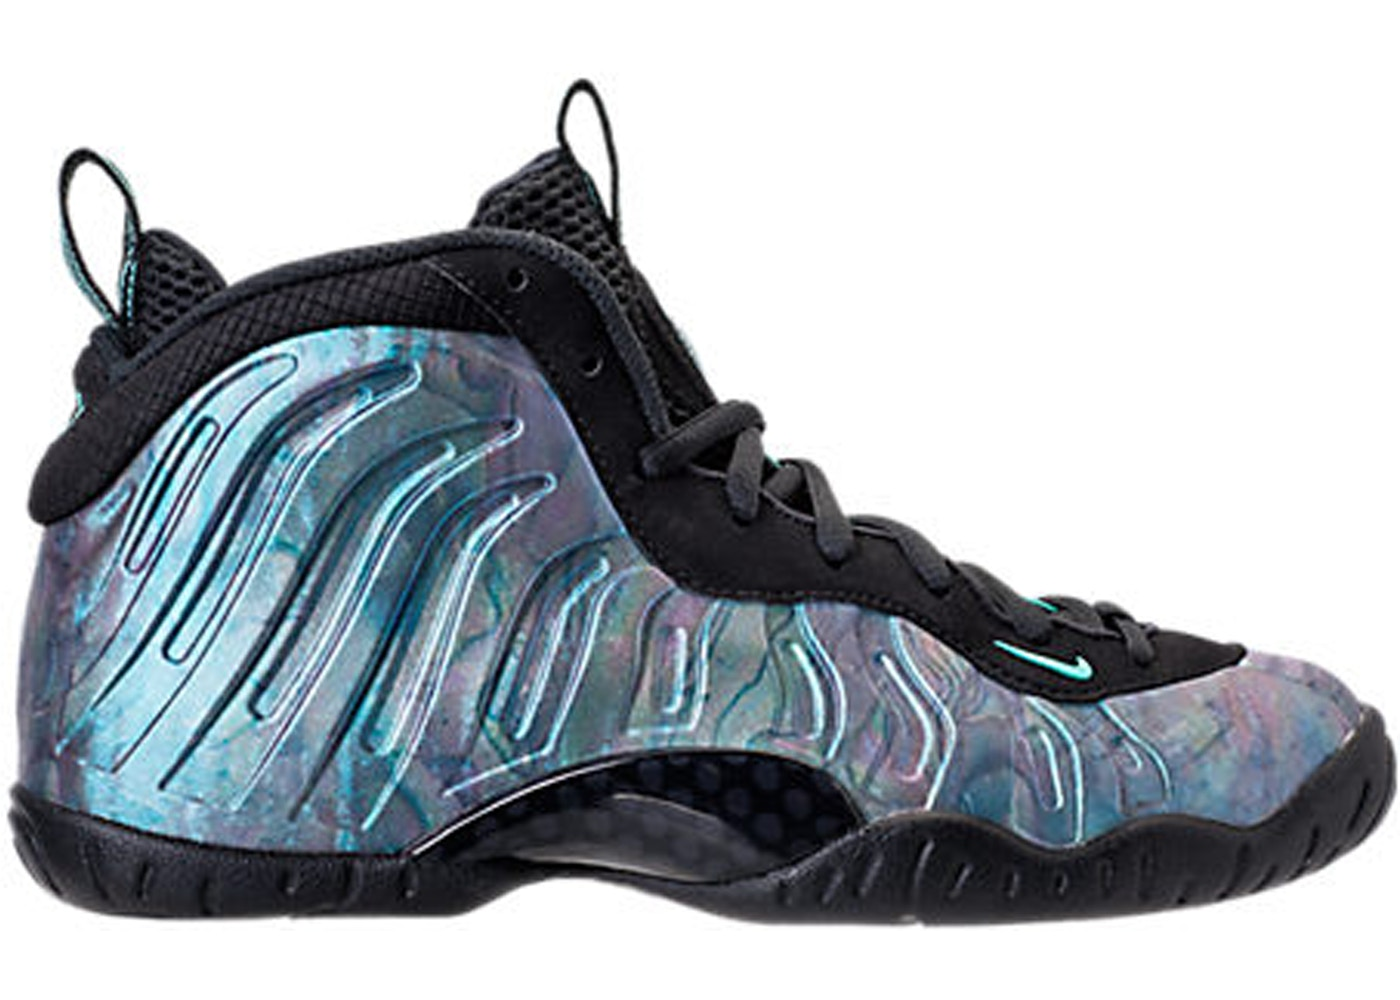 bf955d57398 Air Foamposite One Abalone (GS) - AO8037-009